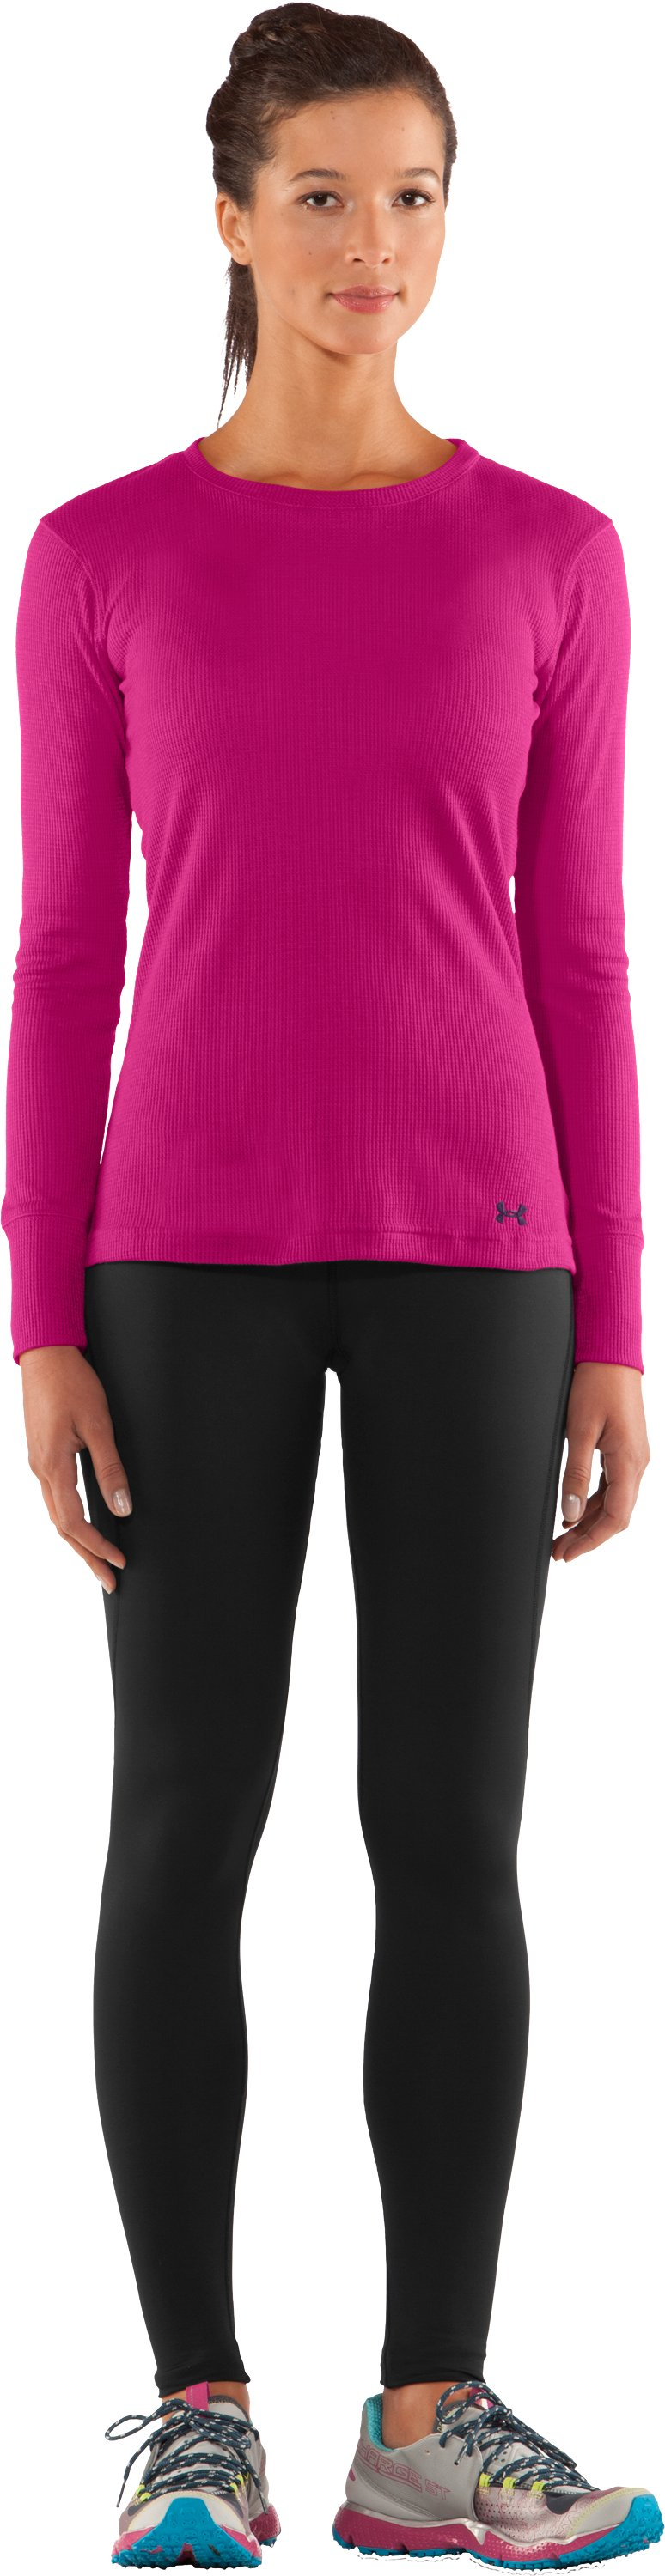 Women's Waffle Long Sleeve Crew Neck, Honeysuckle, Front